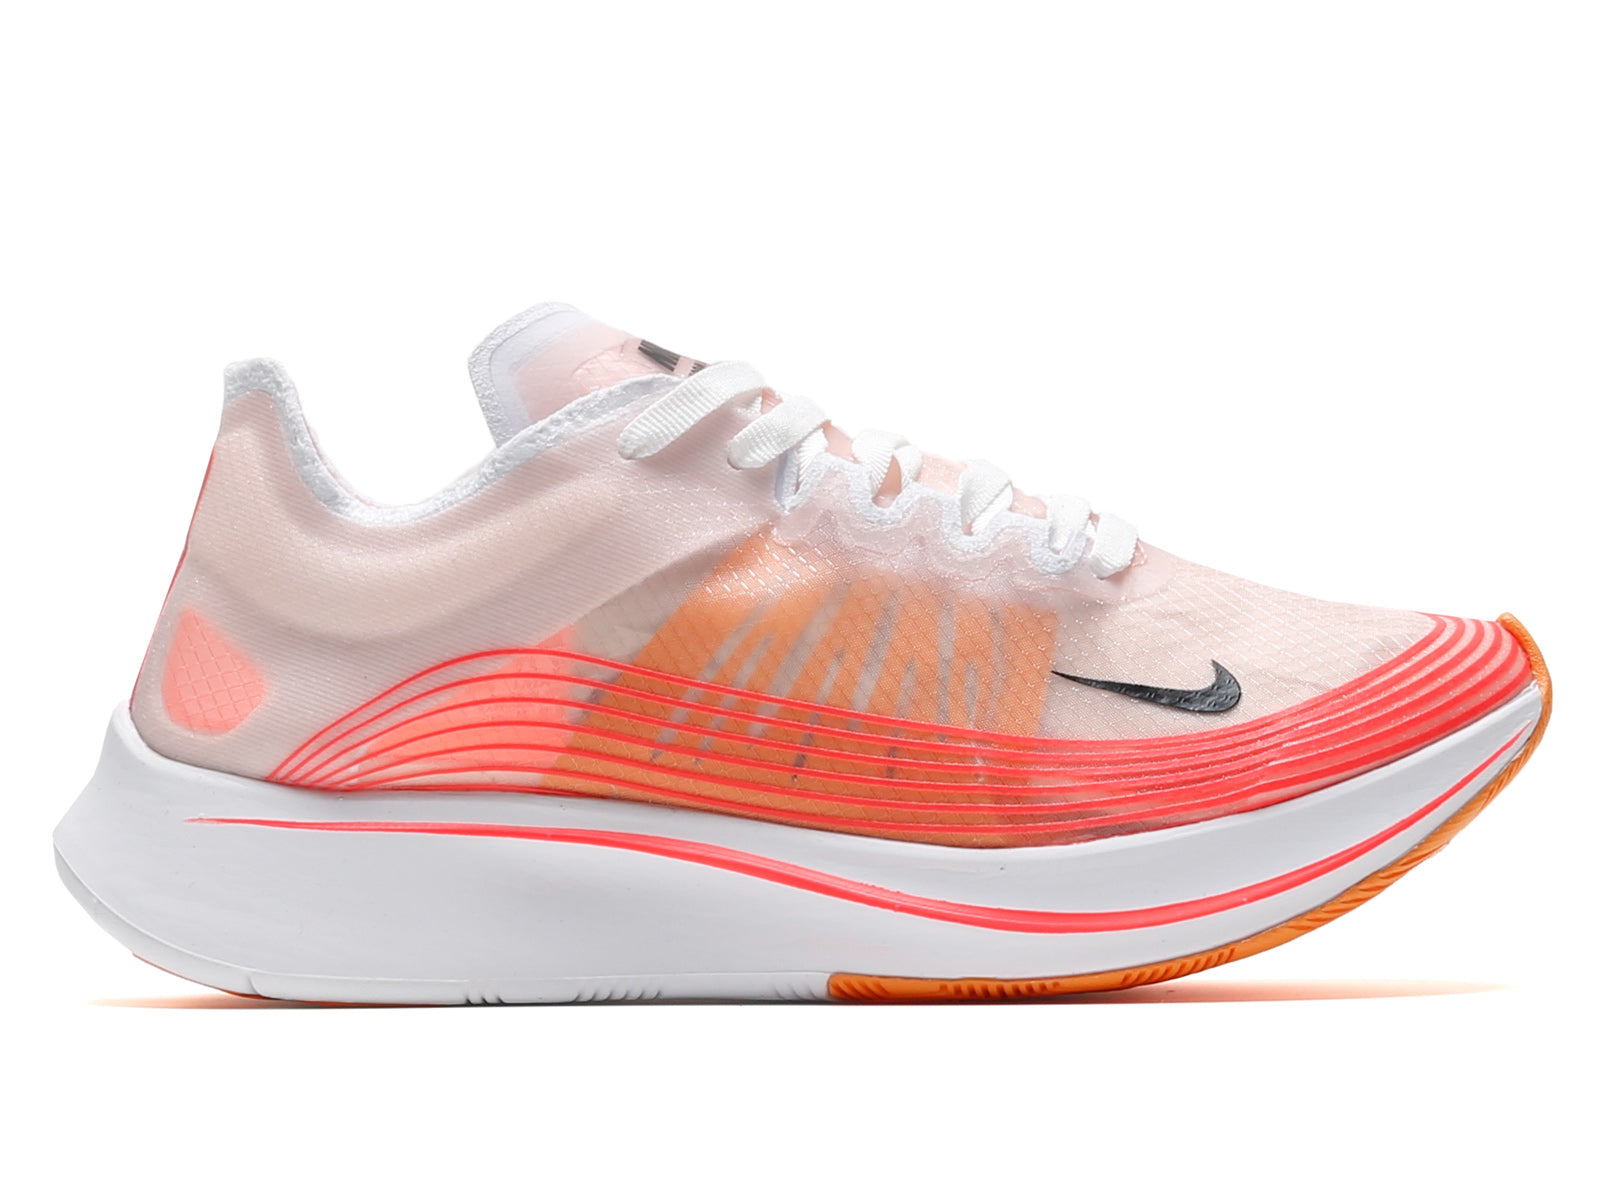 newest 1414c b1425 Womens Nike Zoom Fly SP VARSITY REDBLACK-SUMMIT WHITE AJ8229-600. Retail  150